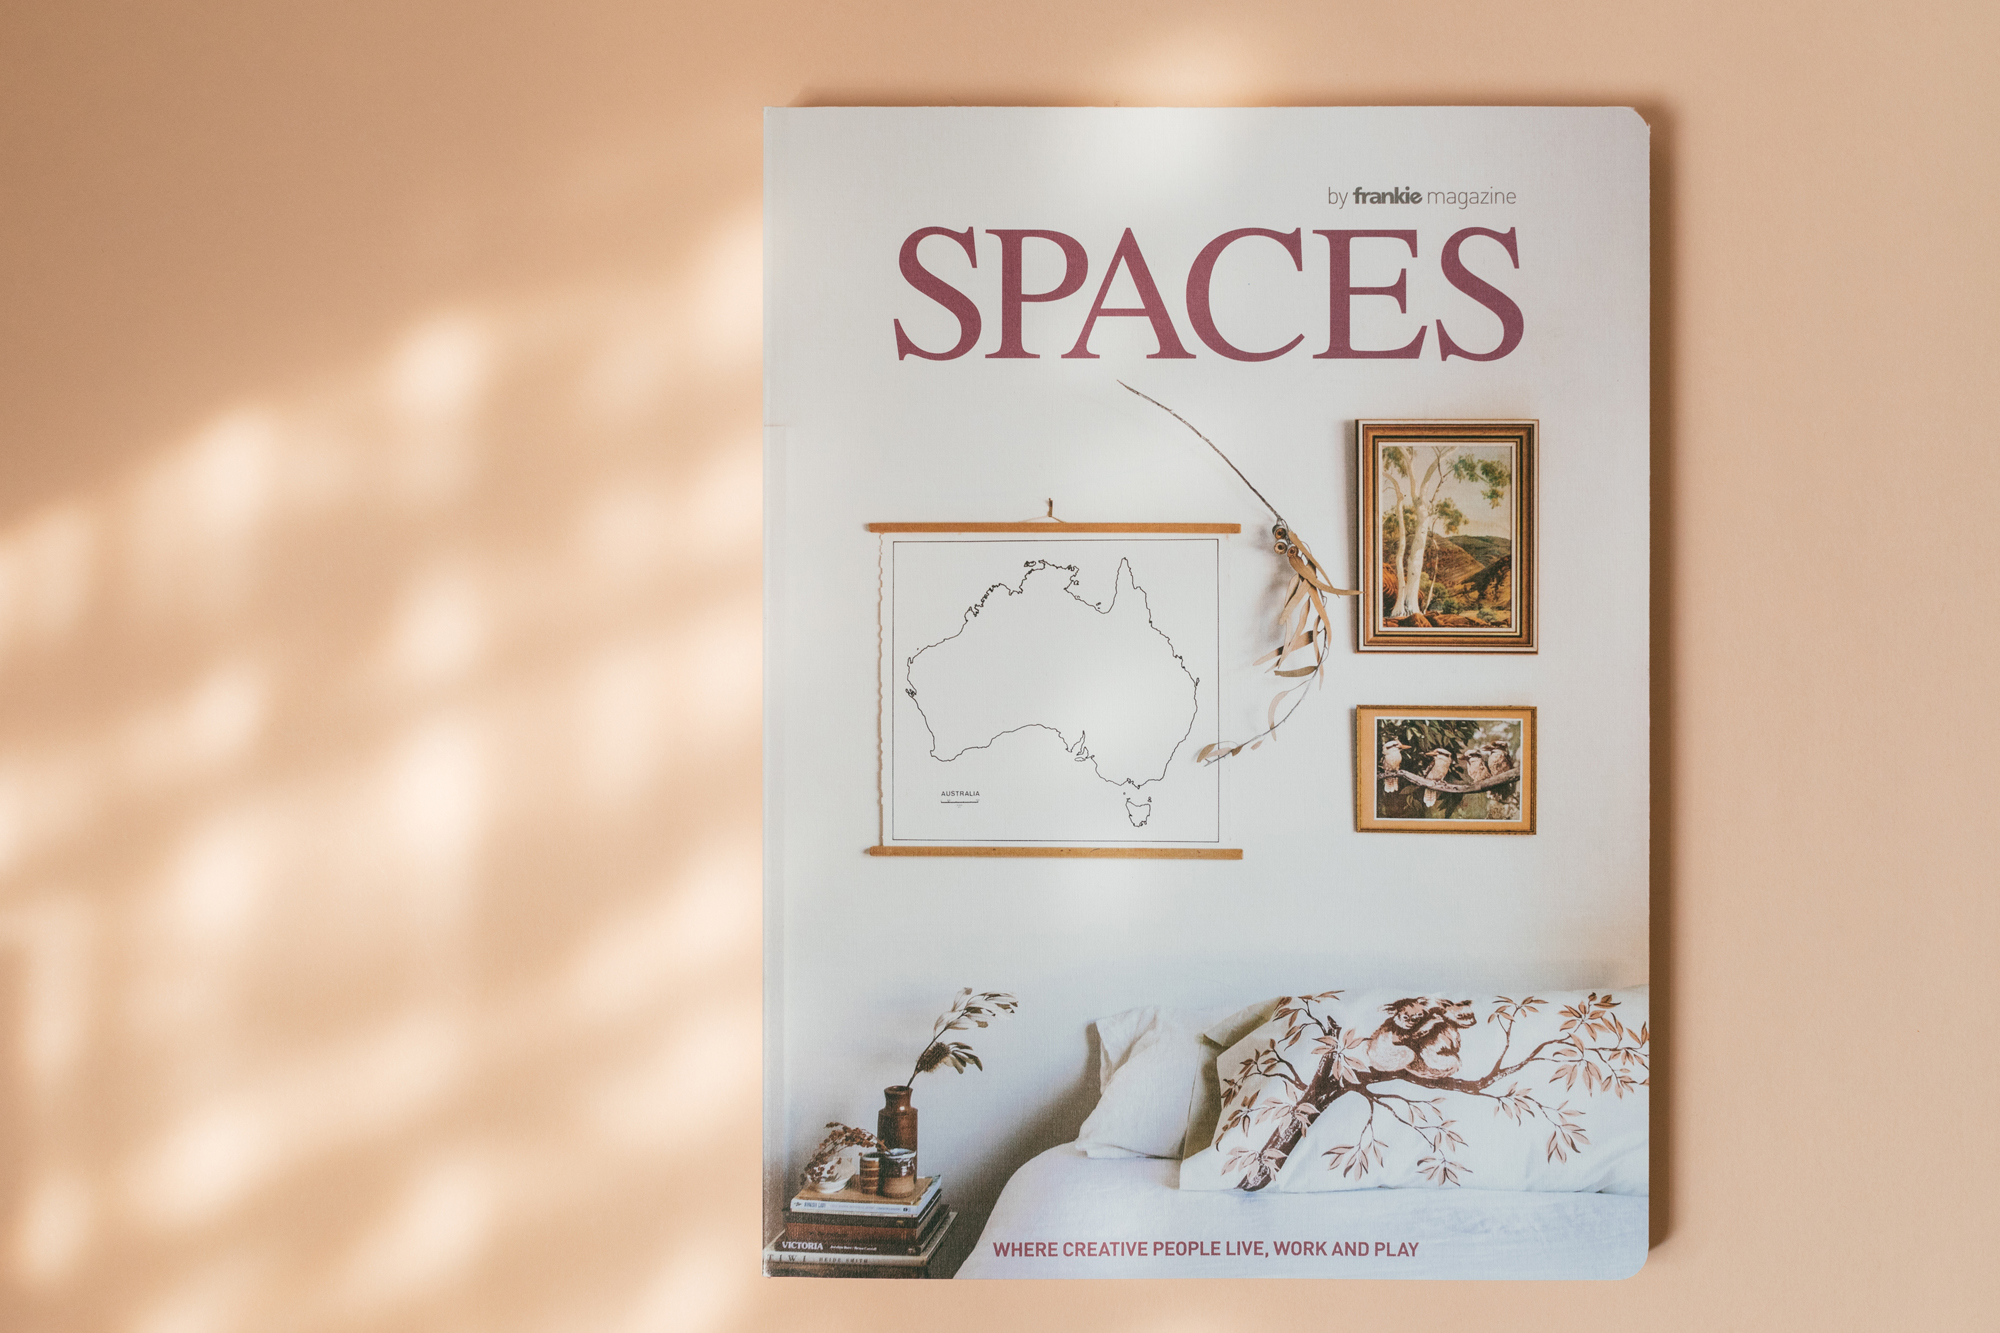 Spaces Magazine Cover by frankie press